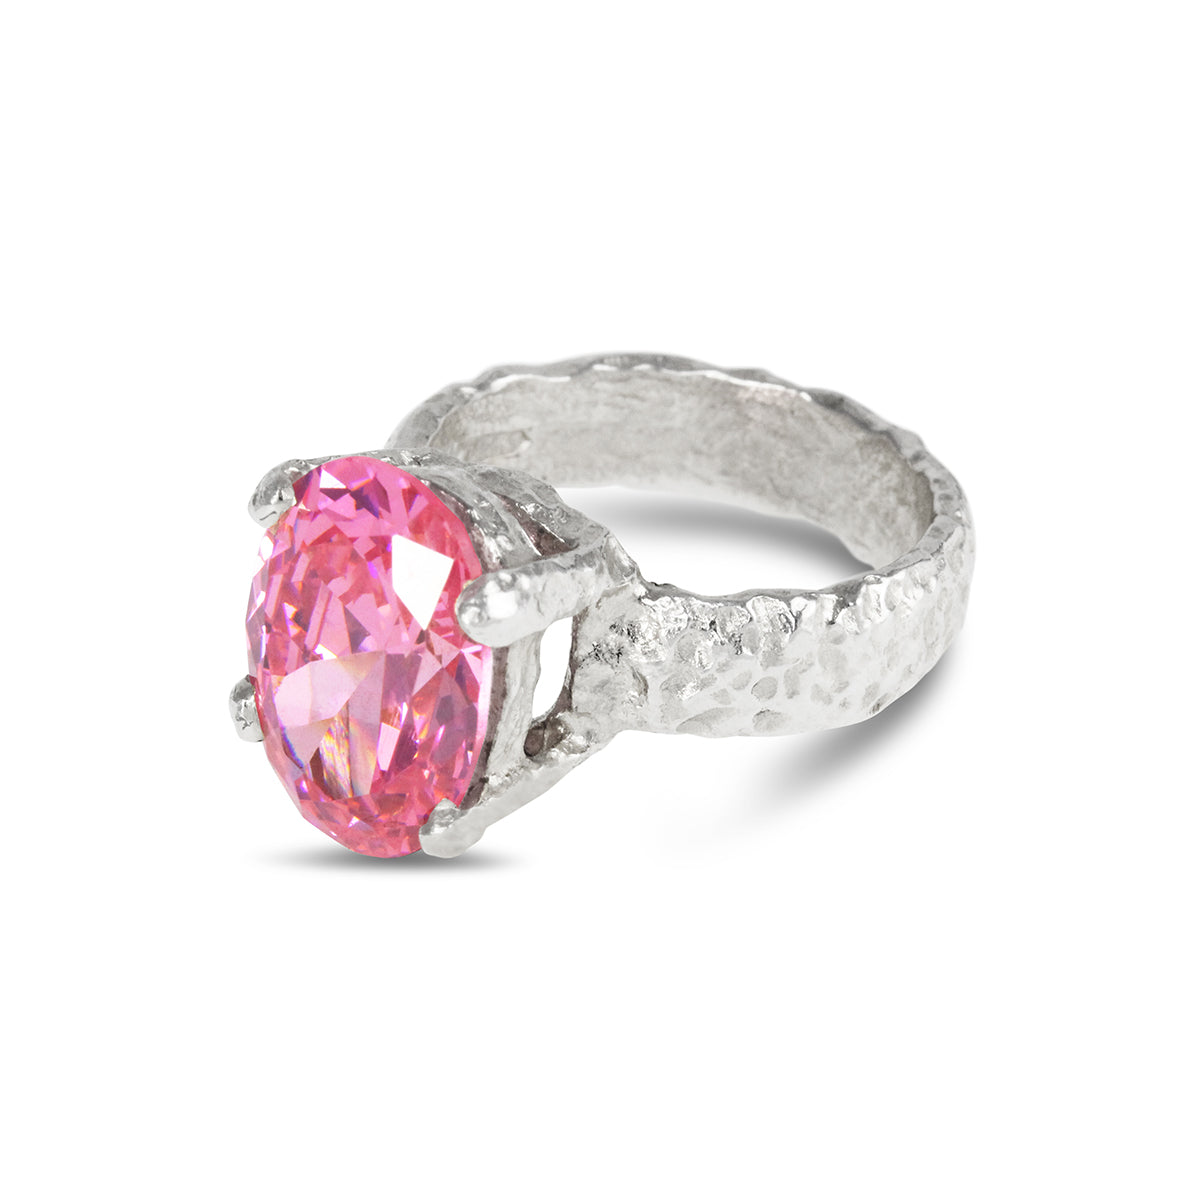 Alveus ring in sterling silver set with oval 14 x 10mm  pink coloured cubic zirconia